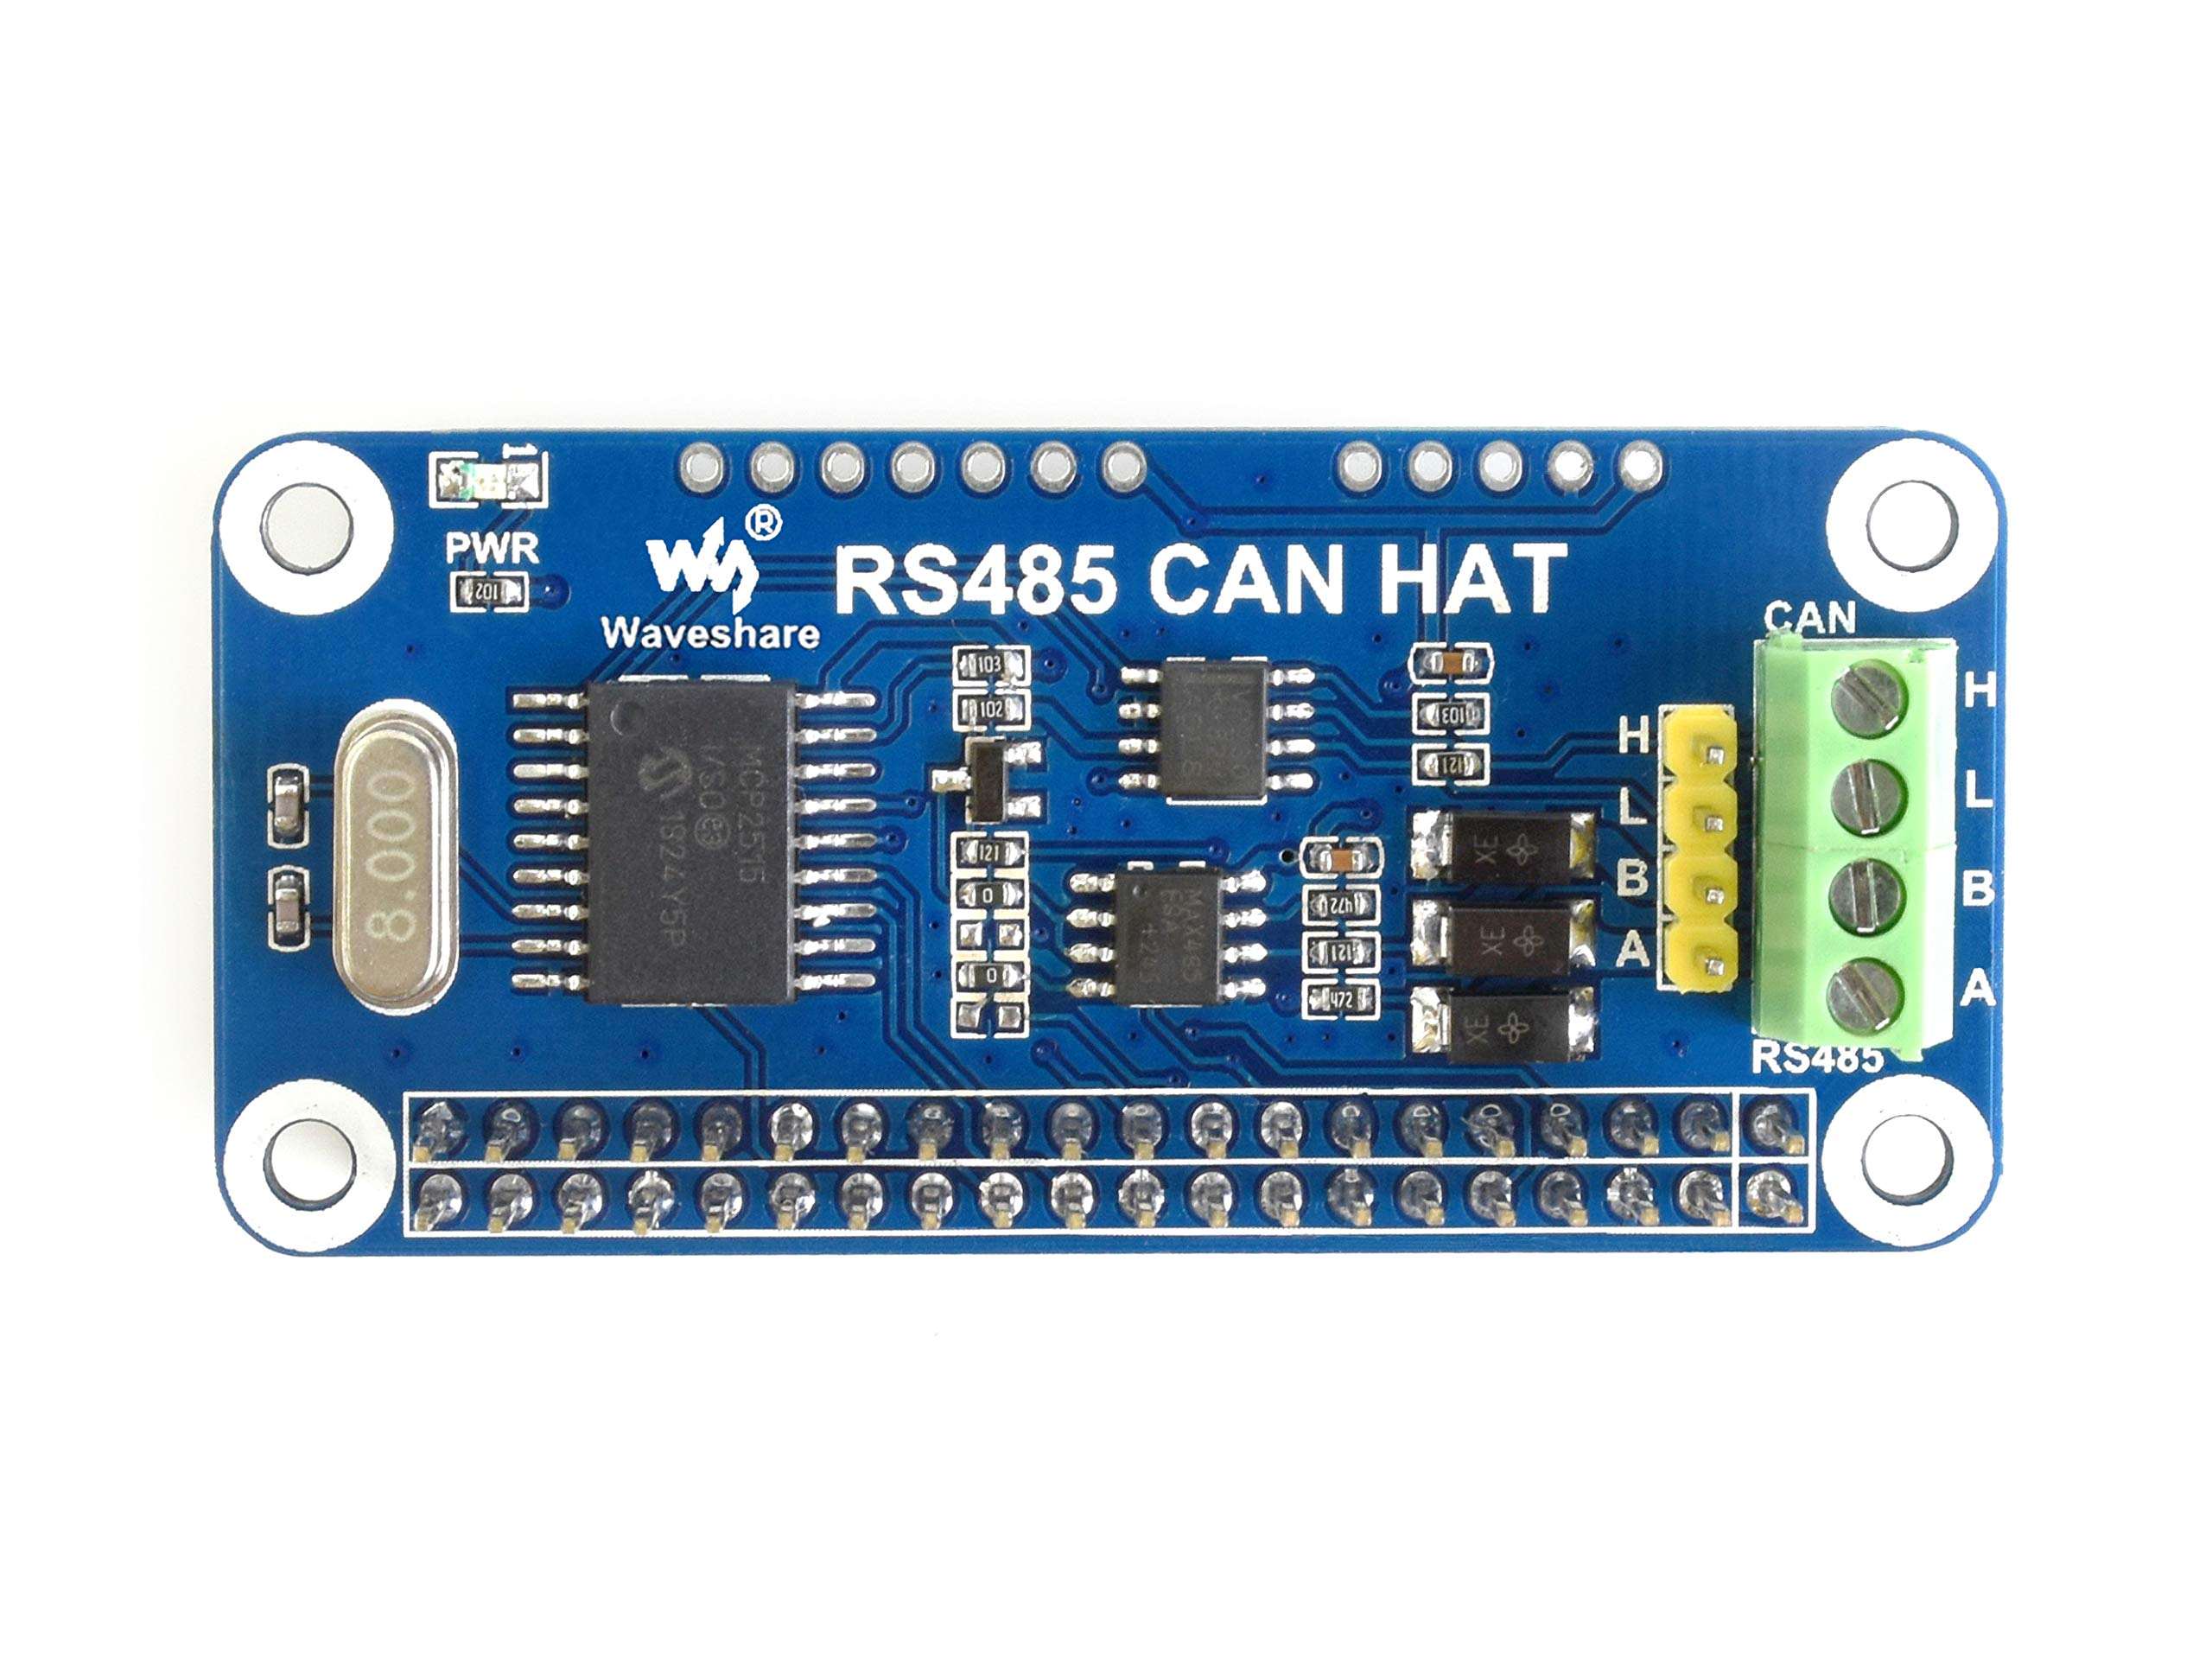 Waveshare RS485 CAN HAT Designed for Raspberry Pi Allowing Stable Long-Distance RS485/CAN Communication